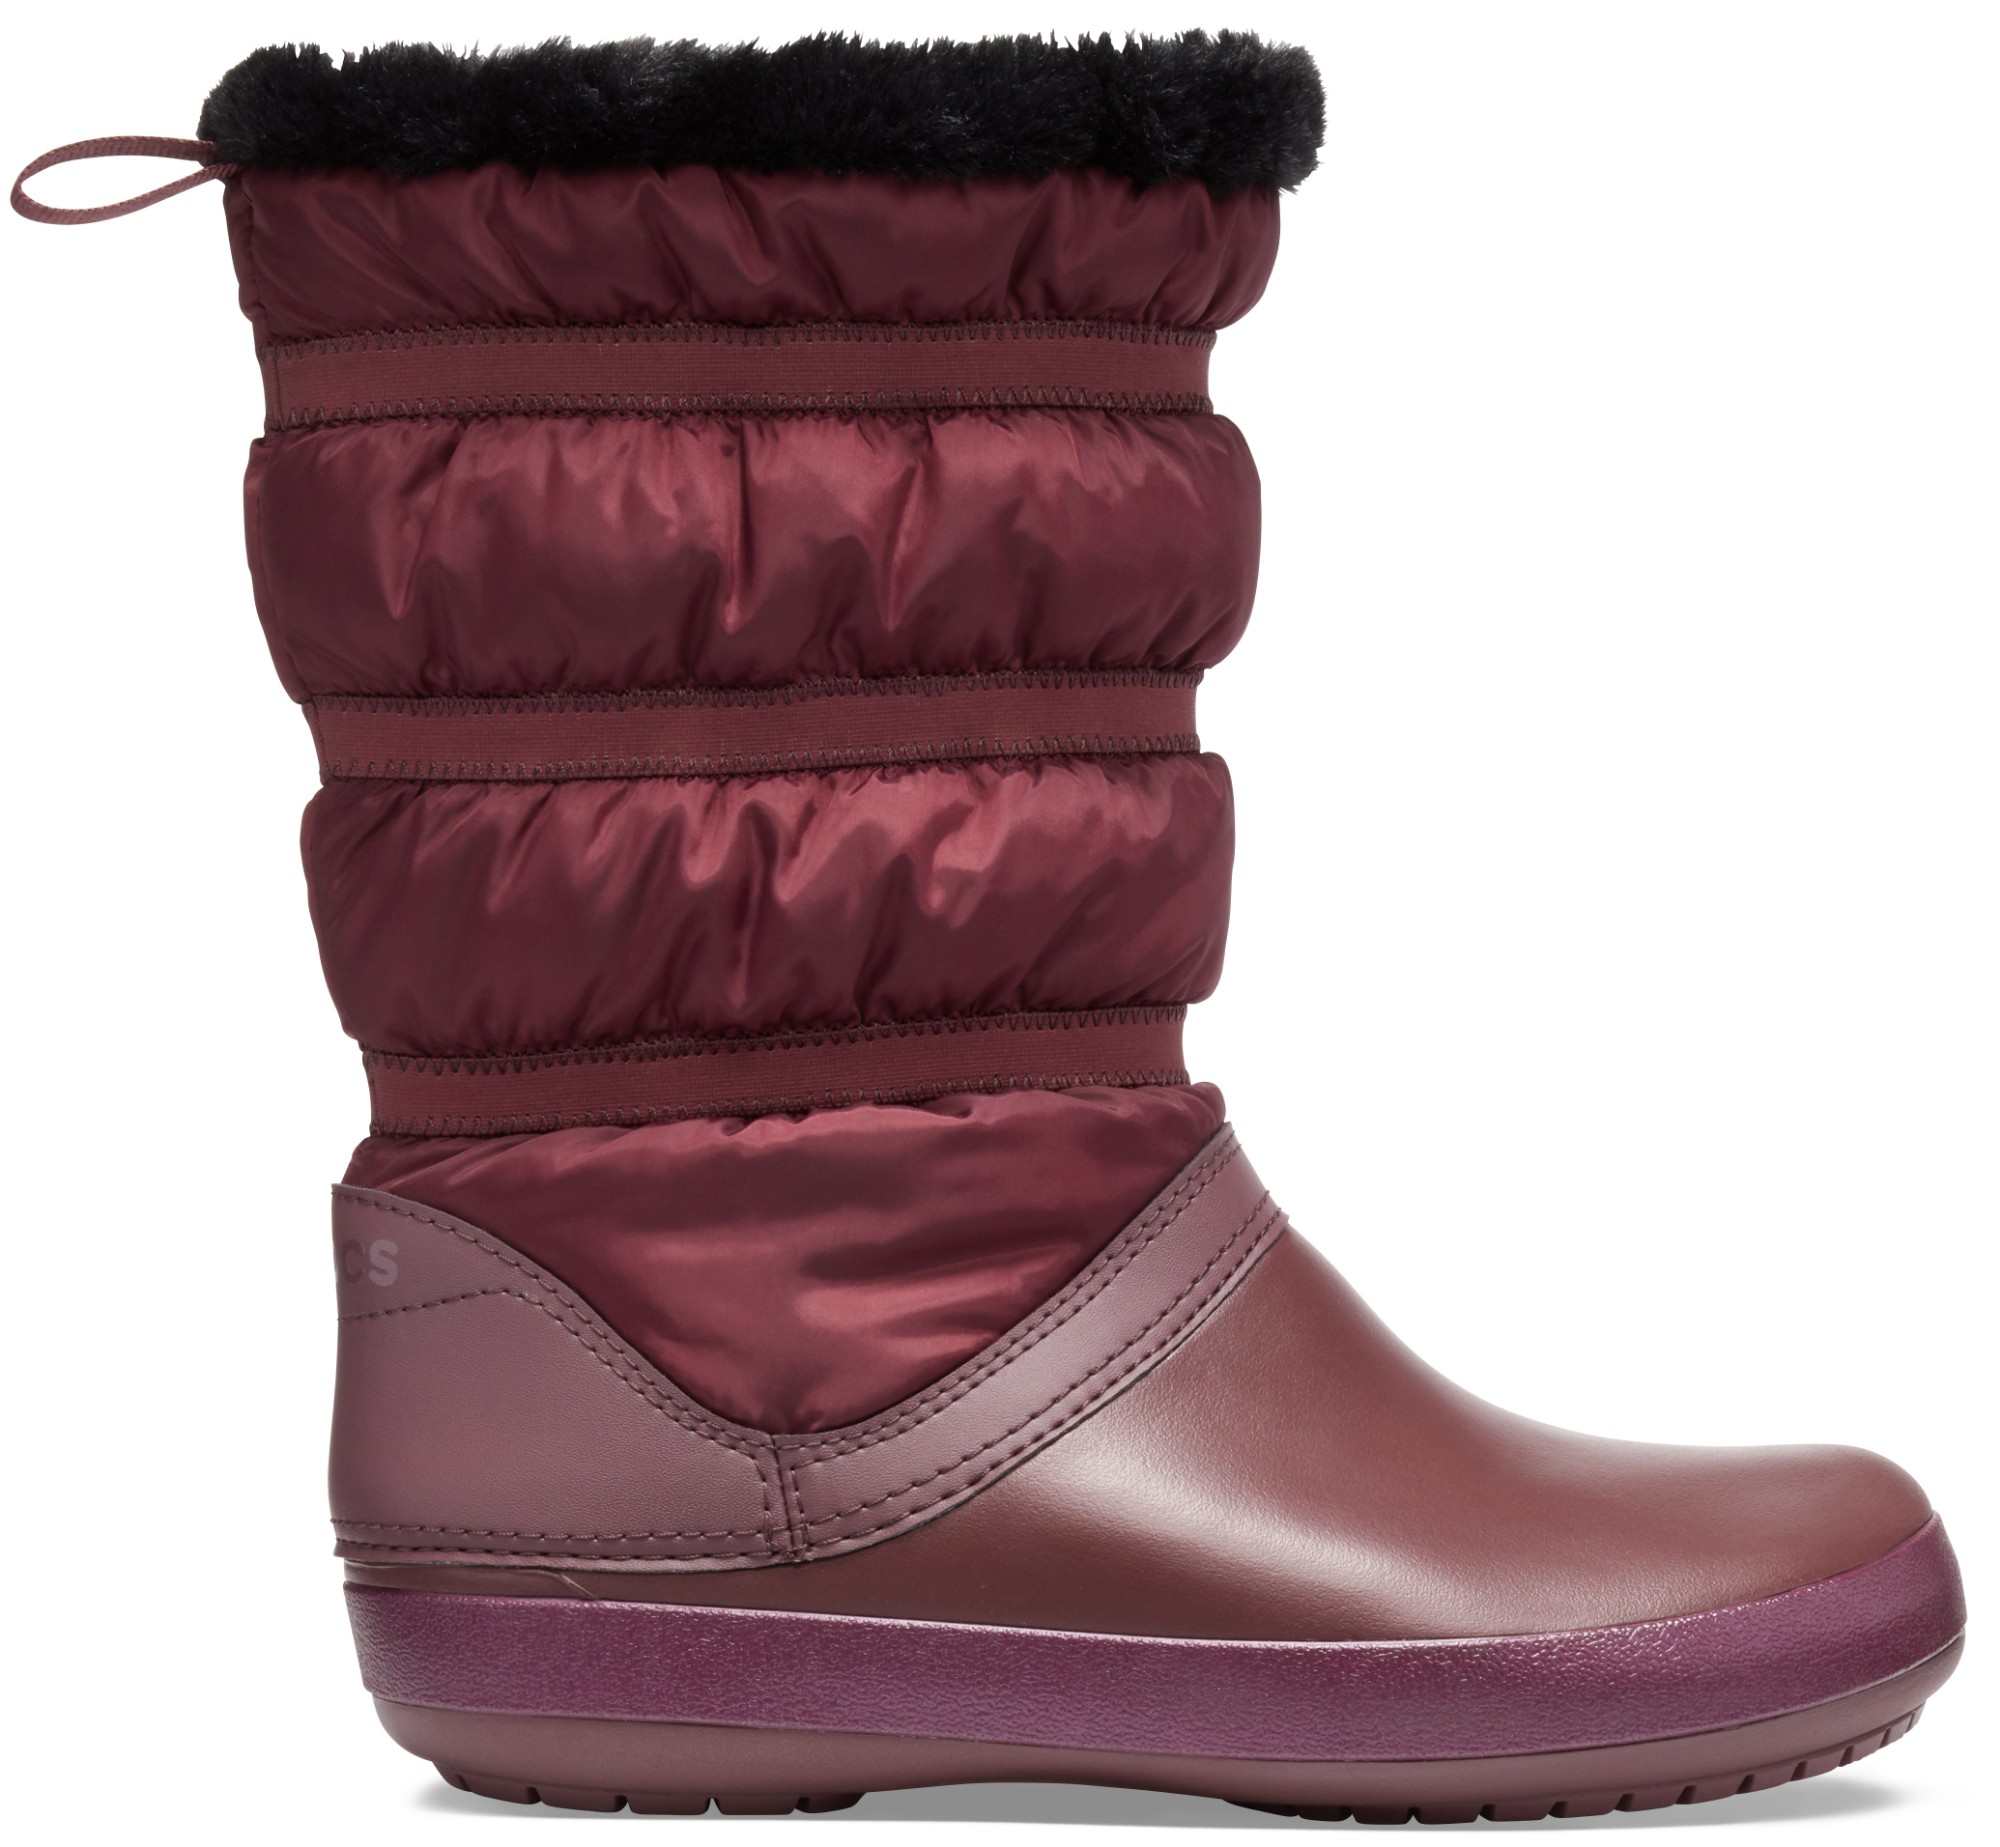 Crocs™ Women's Crocband Winter Boot Burgundy 38,5